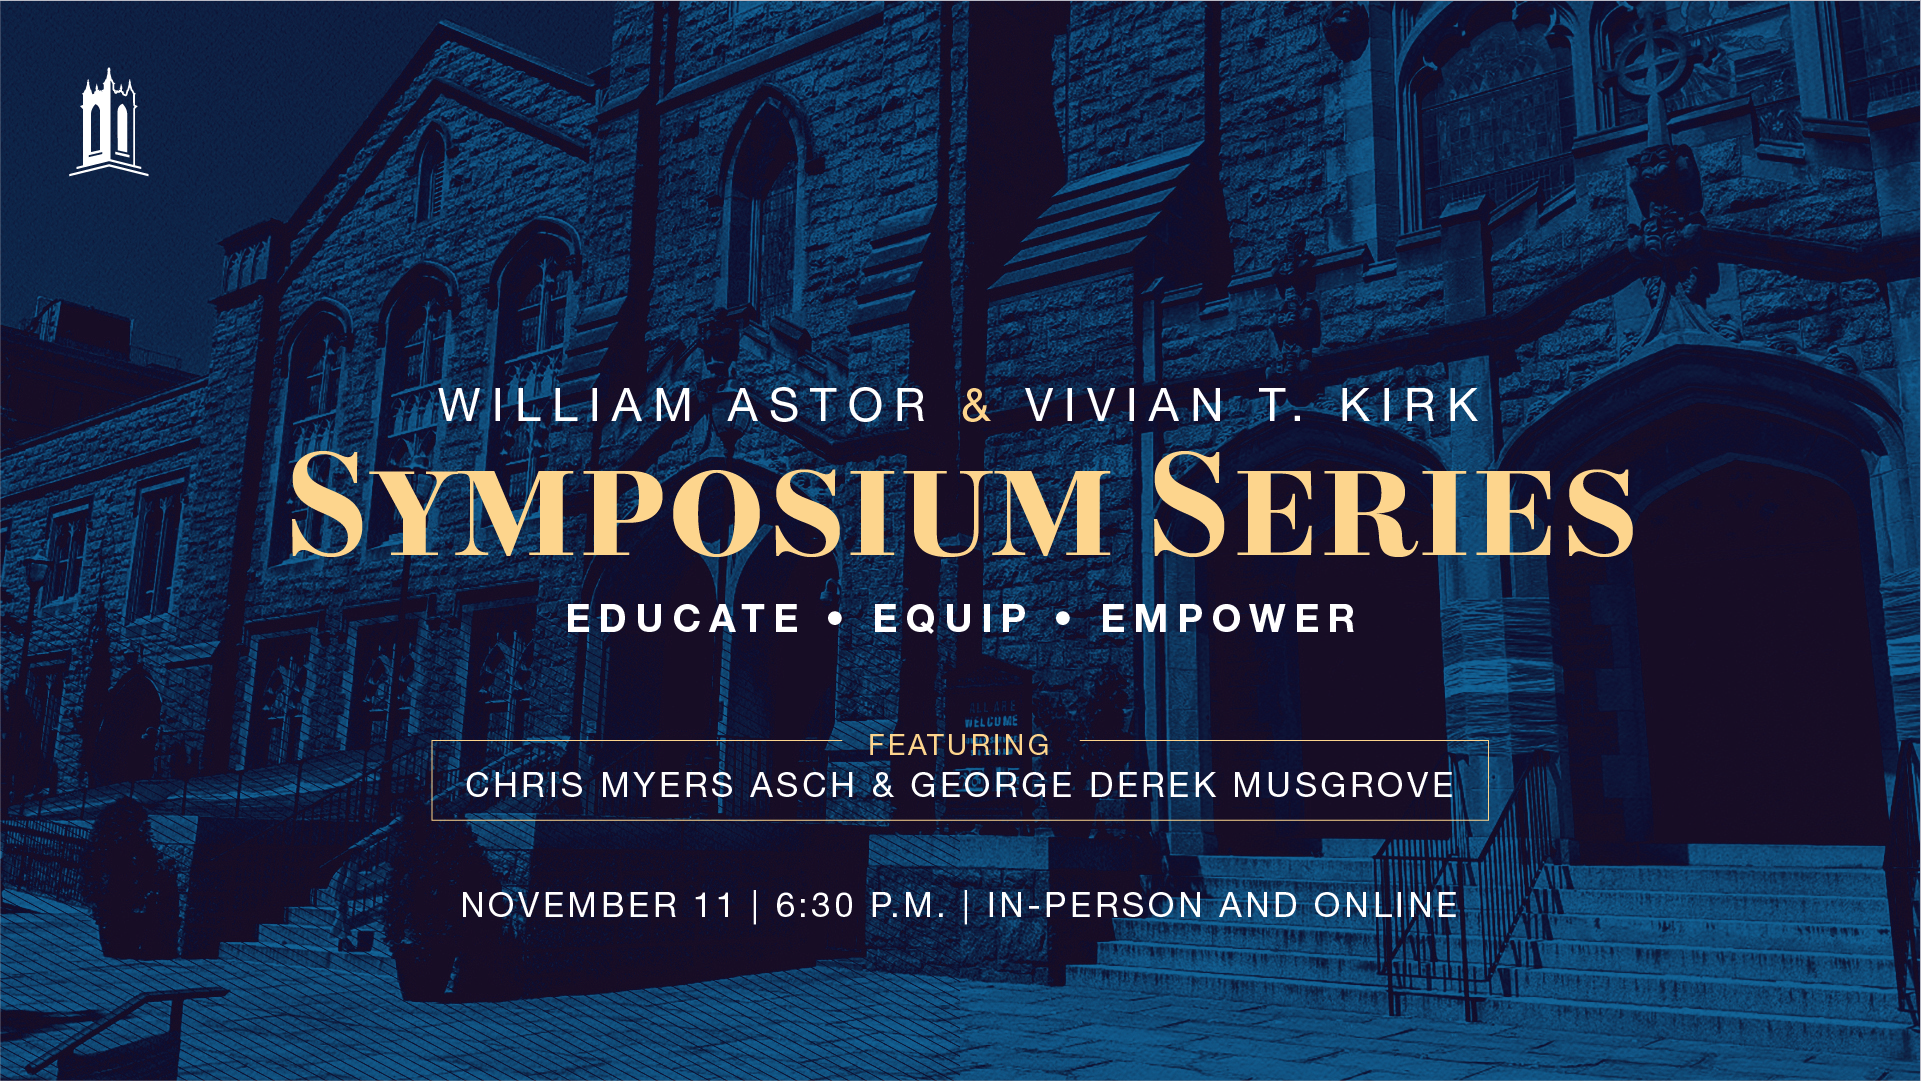 William Astor and Vivian T. Kirk Symposium Lecture with Dr. Chris Myers Asch and Dr. George Derek Musgrove